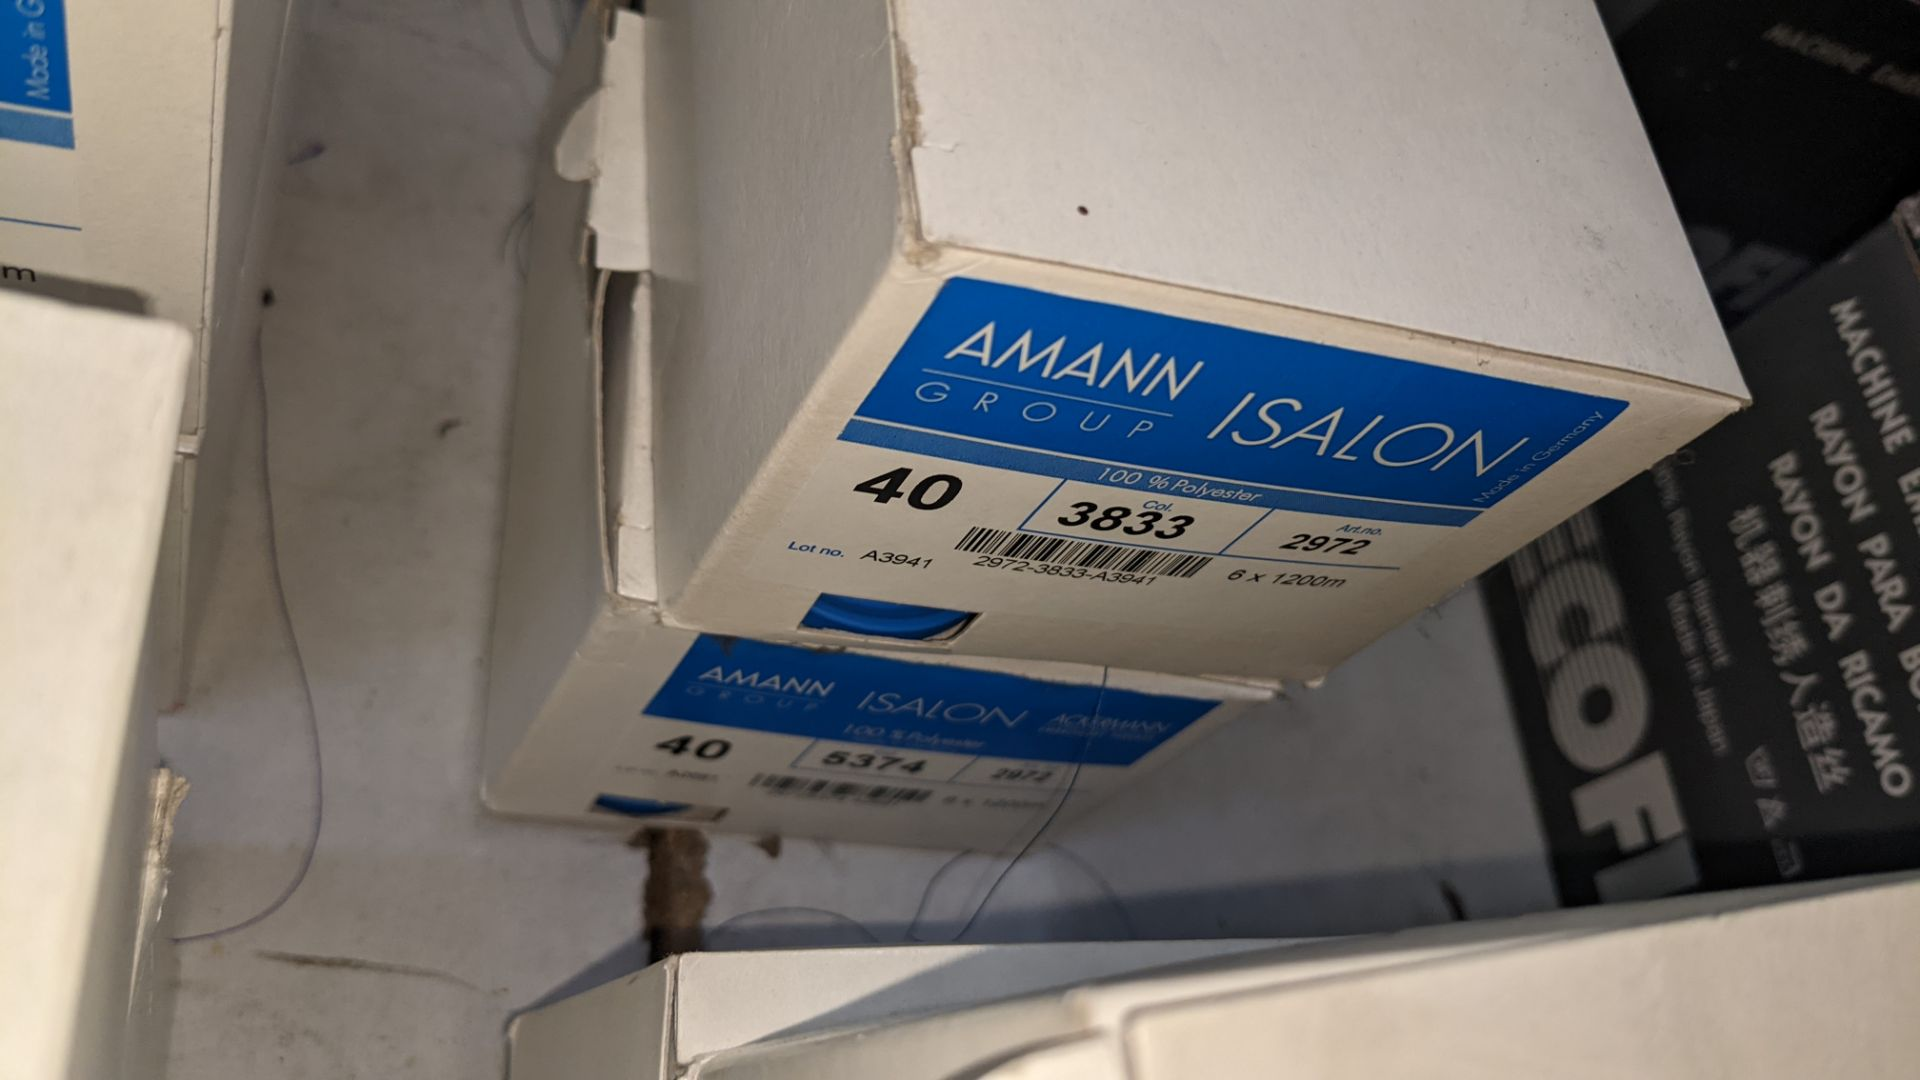 12 boxes of Amann Group ISALON 40 polyester embroidery thread - Image 8 of 9